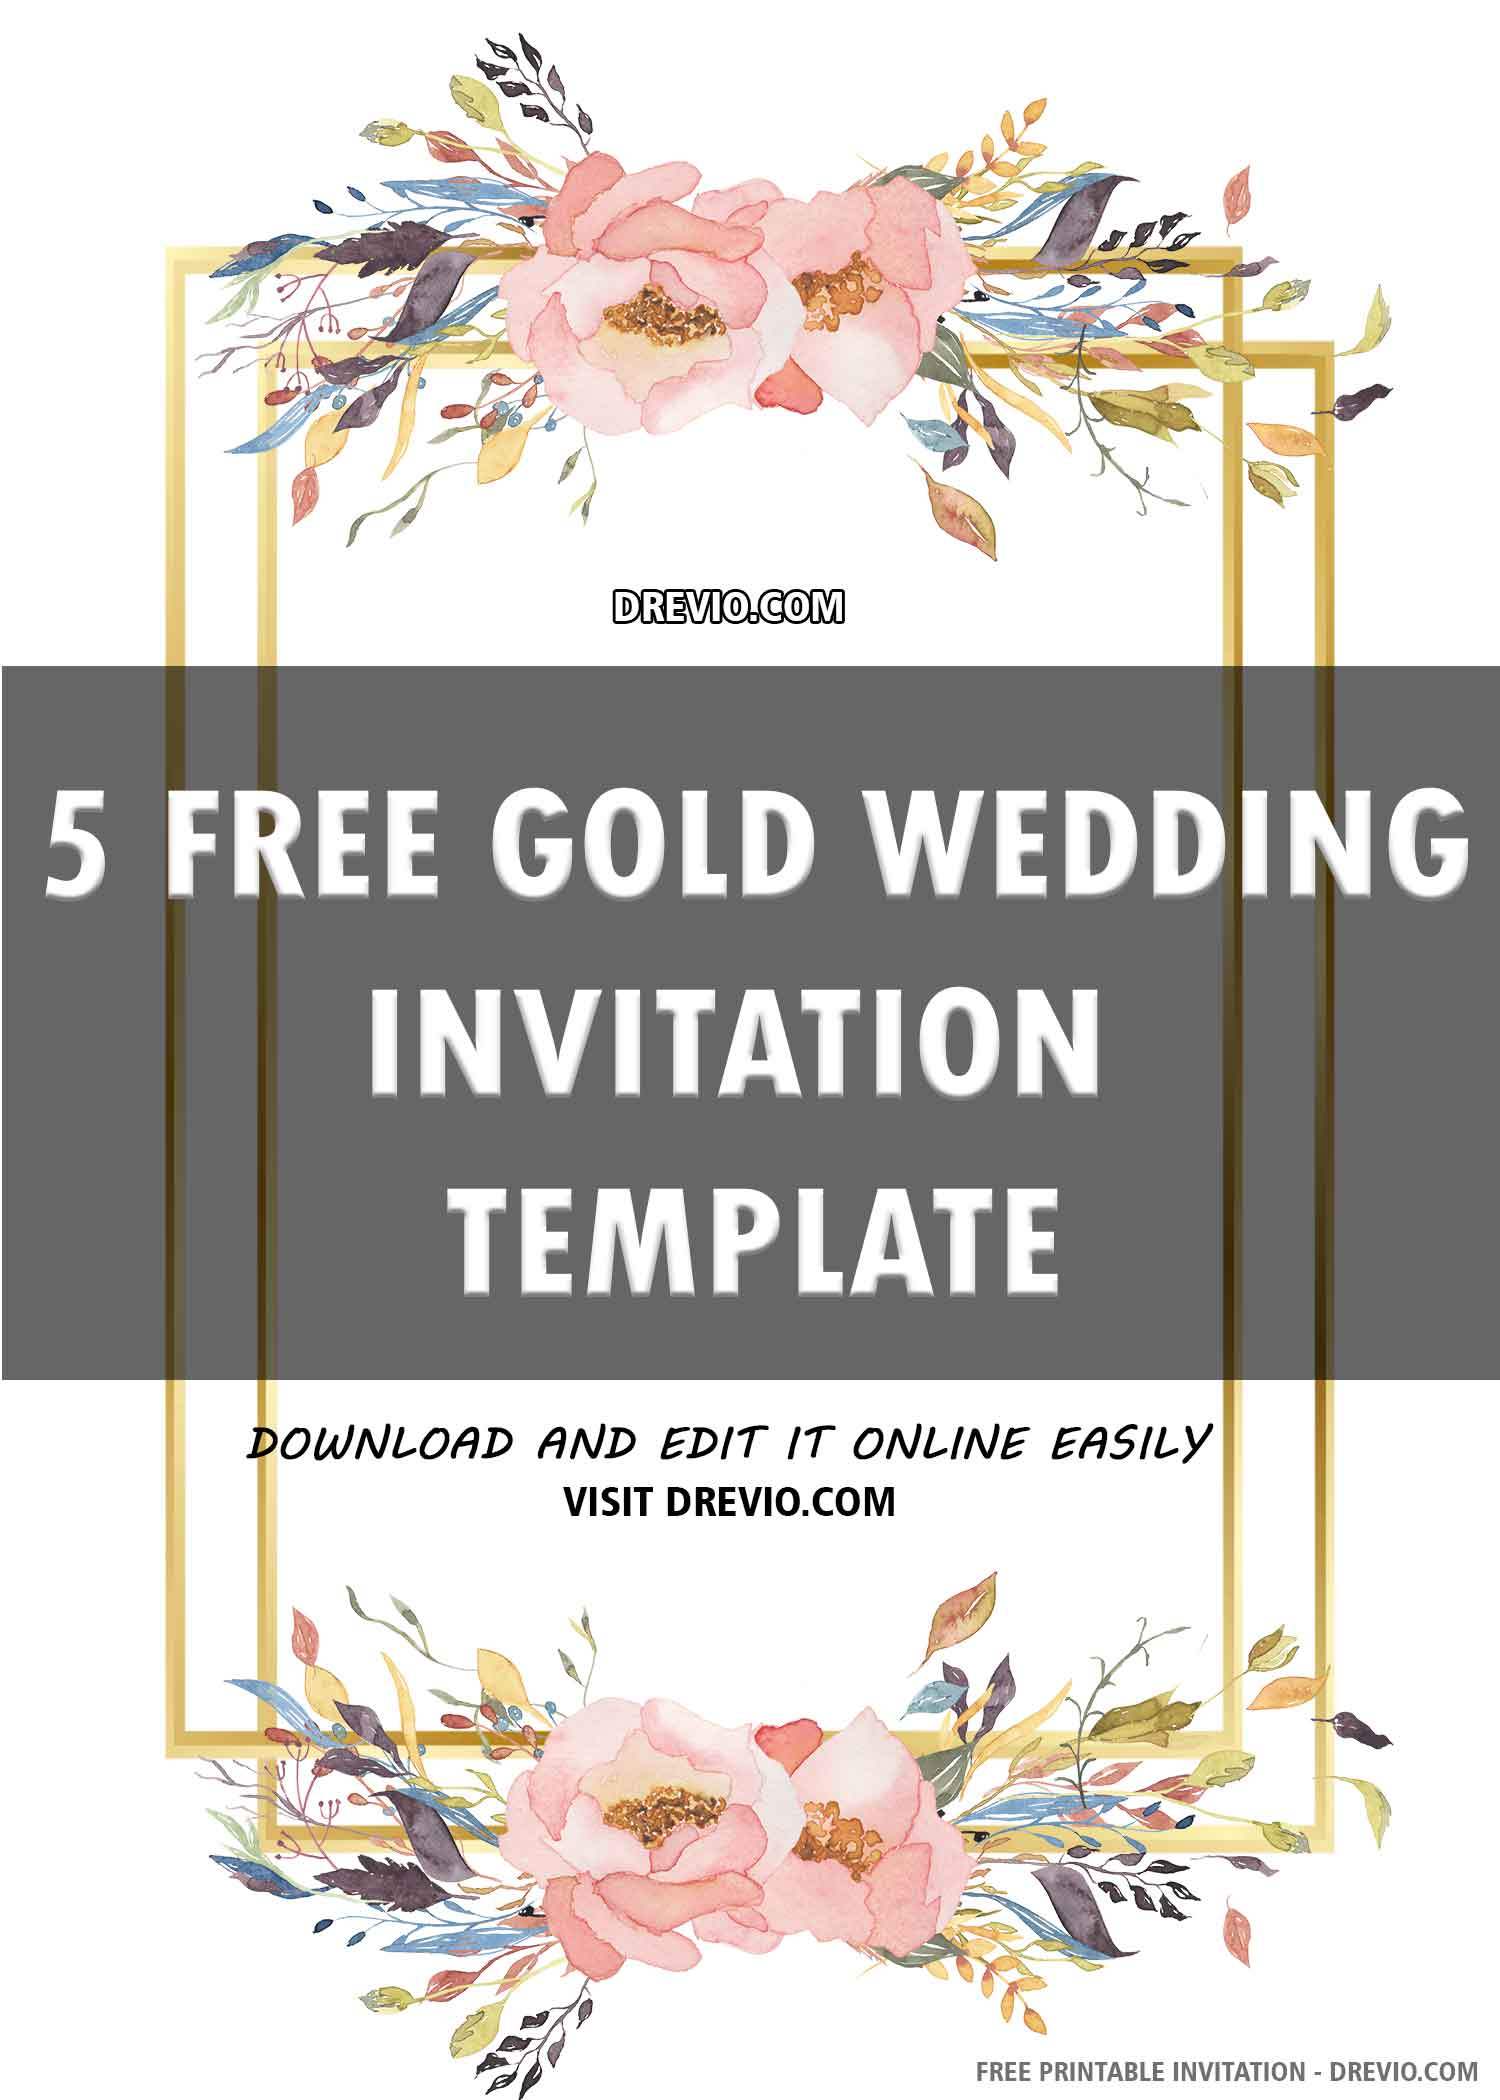 Free Printable Gold Wedding Invitation Template